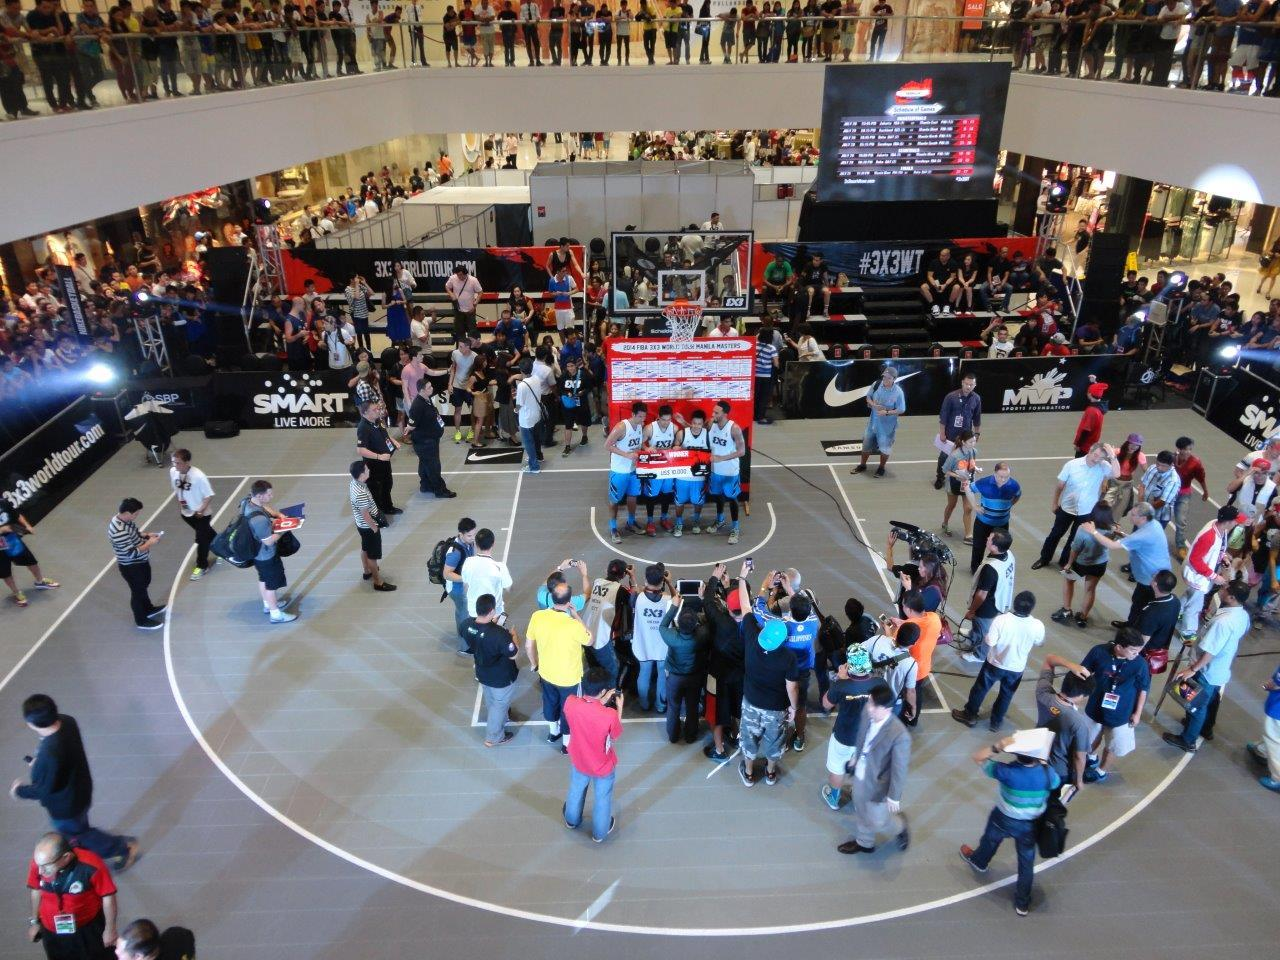 Award Check Handed out on the Sport Court Basketball Court in Manilla